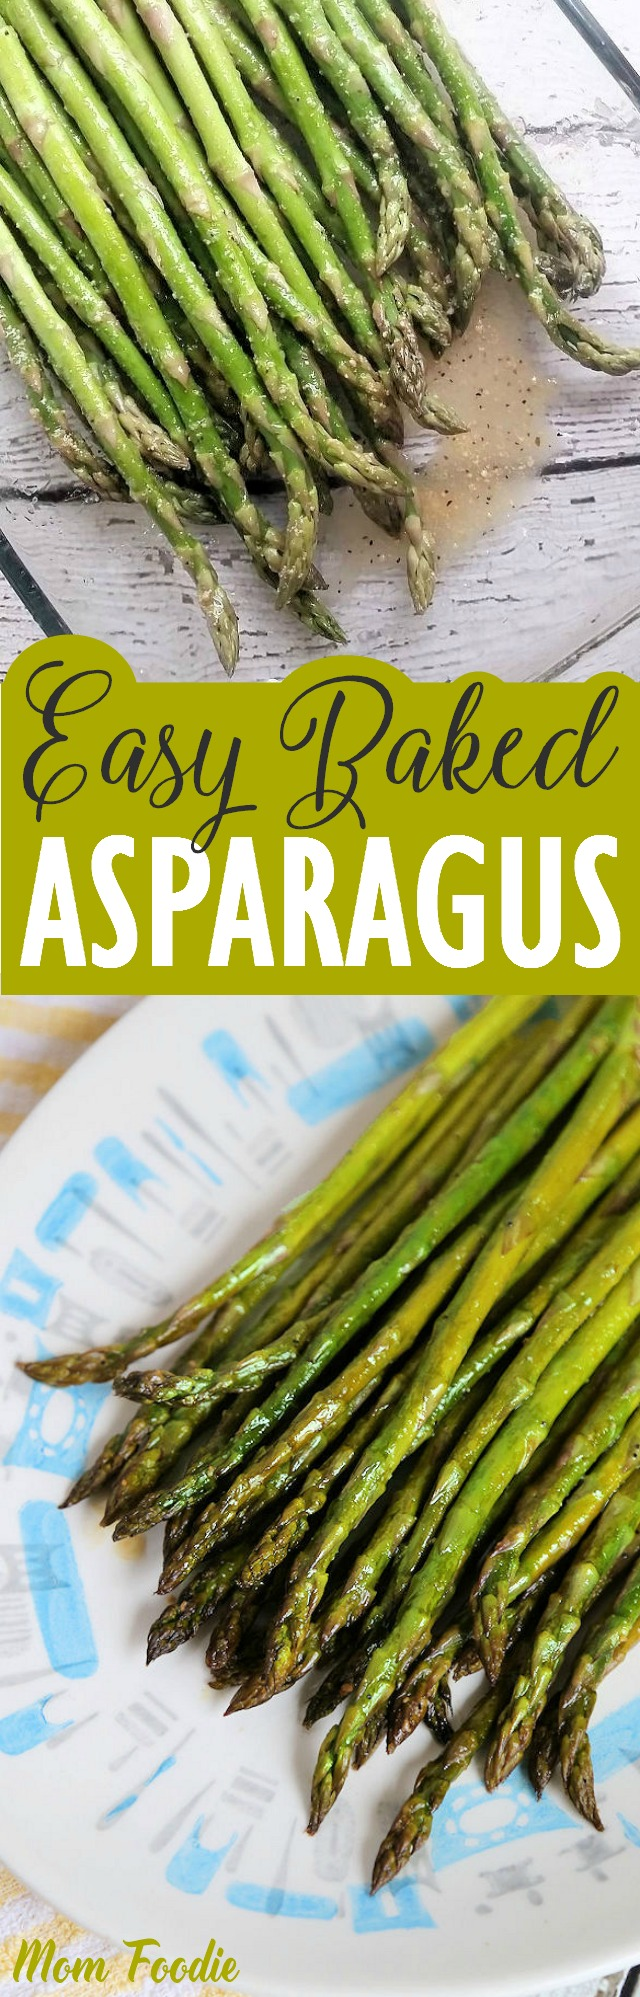 how to cook white asparagus in the oven